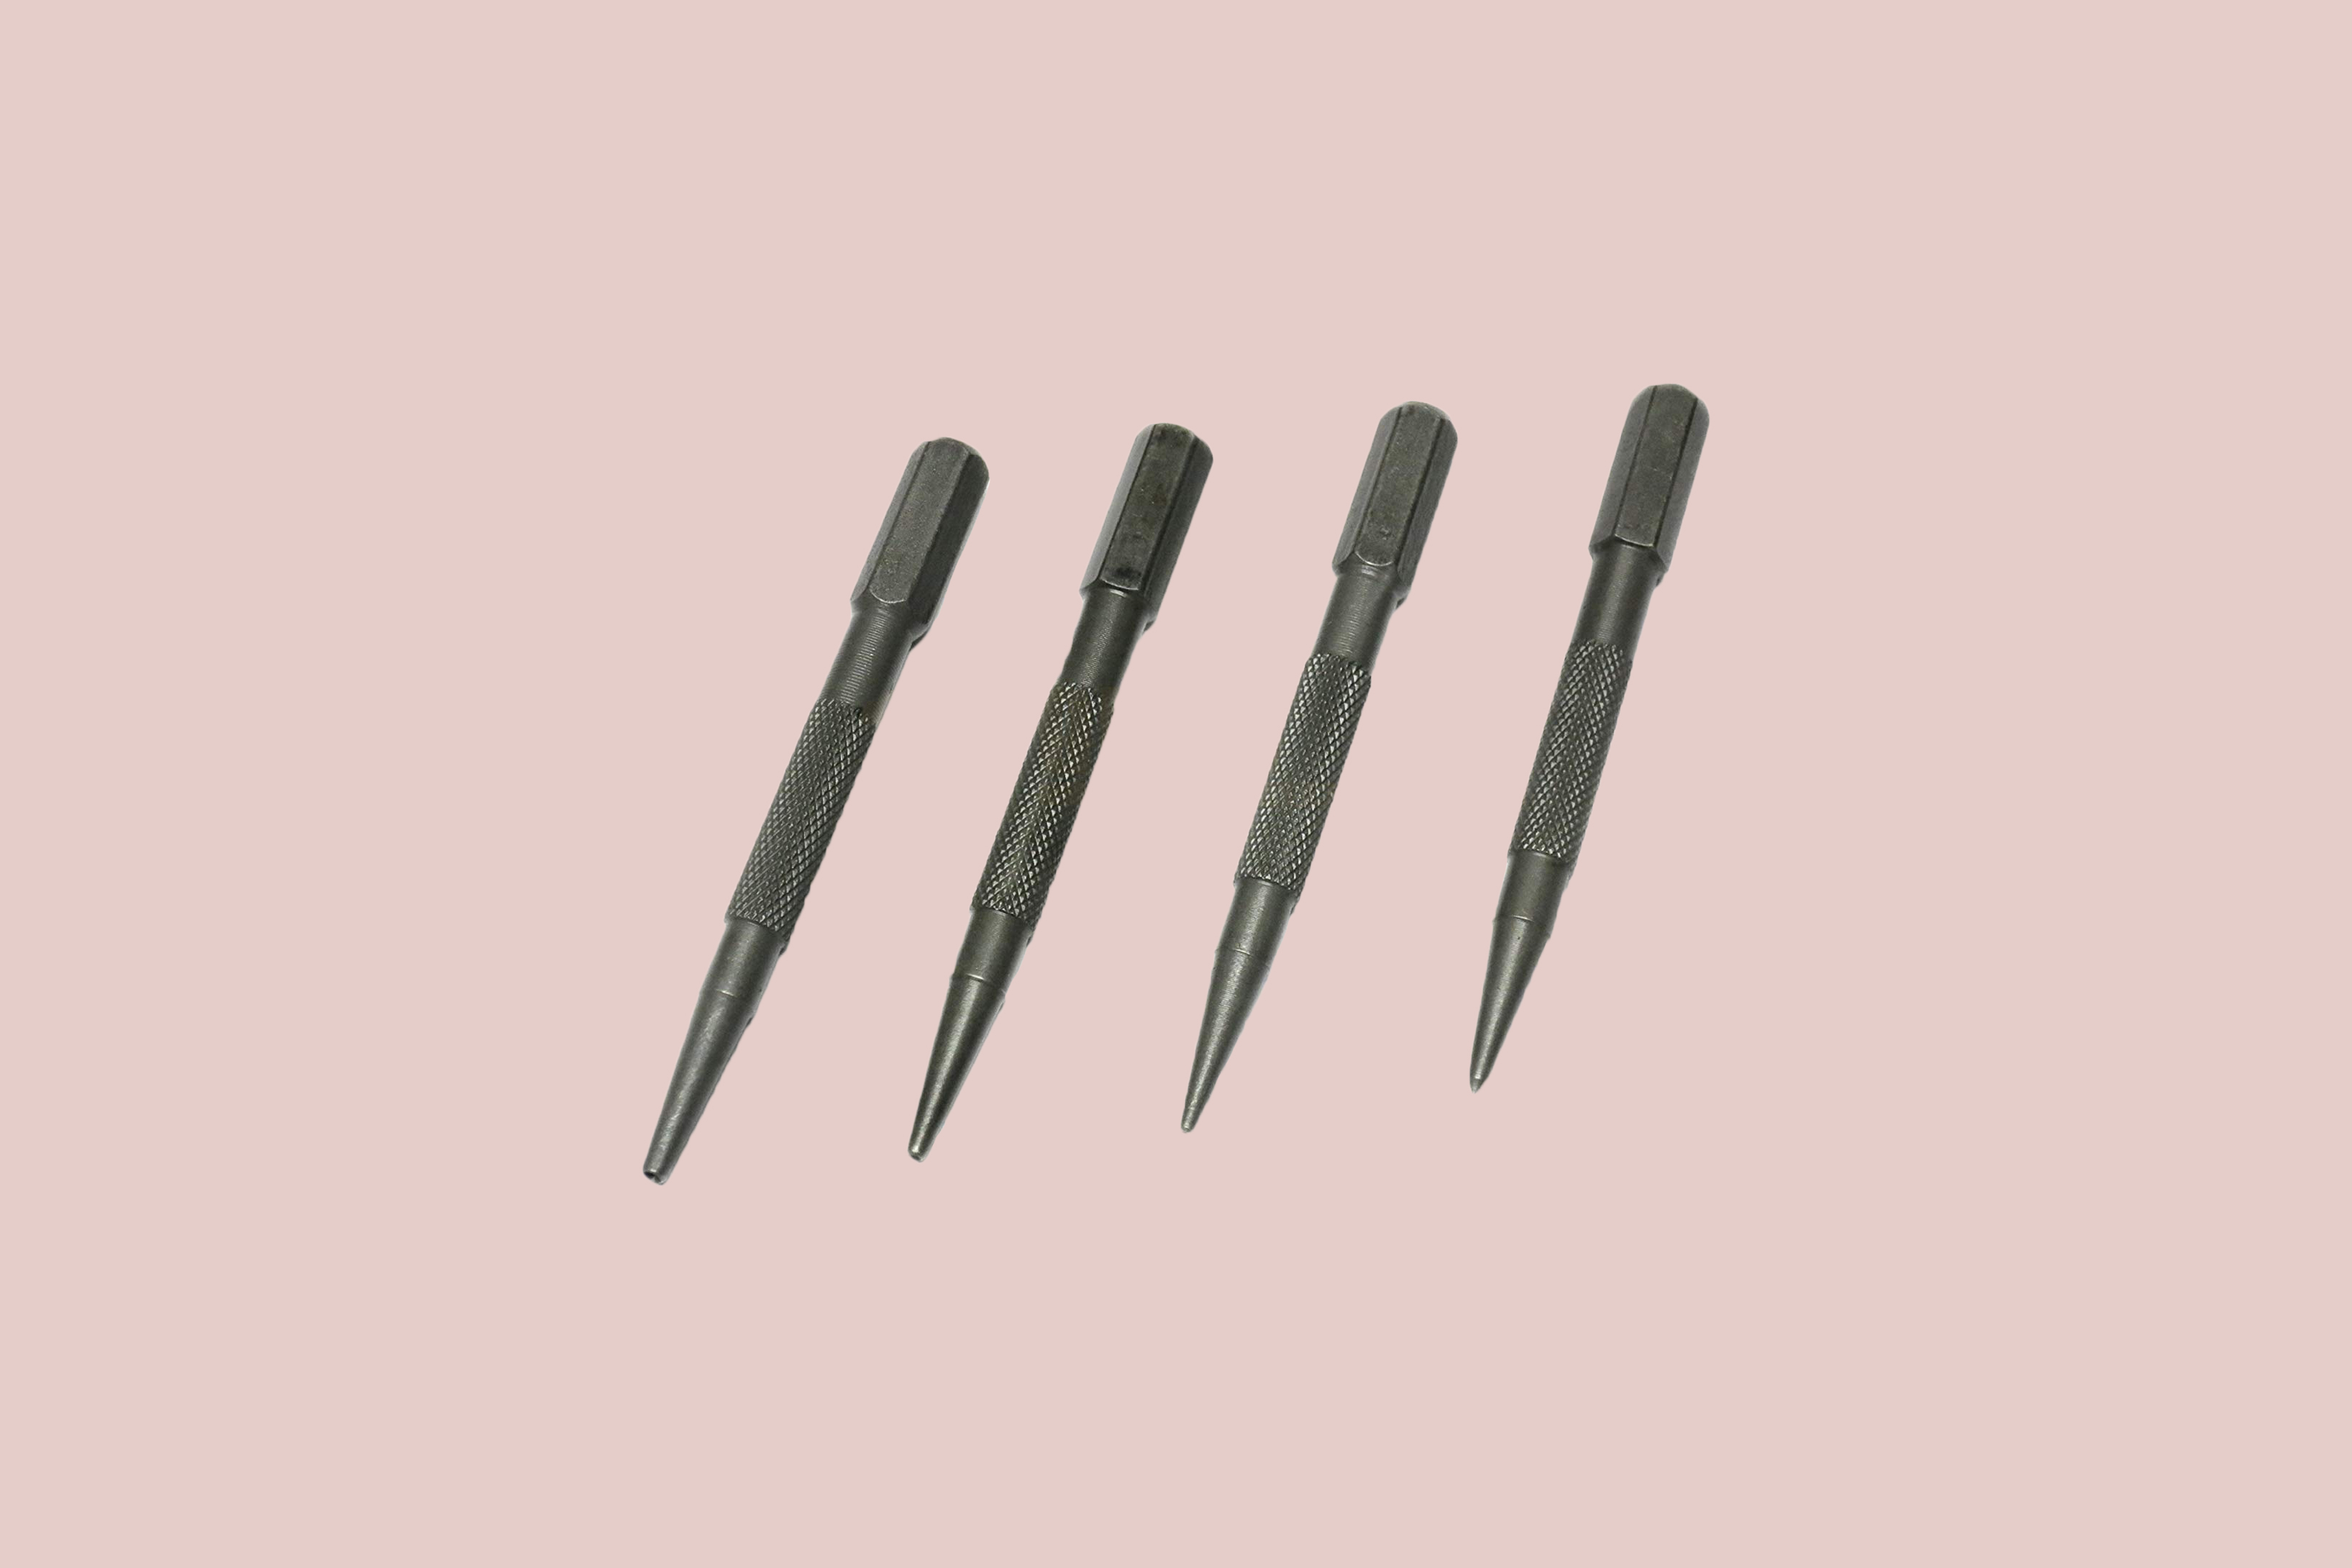 Qualihome 4 Piece Nail Setter & Center Punch Set